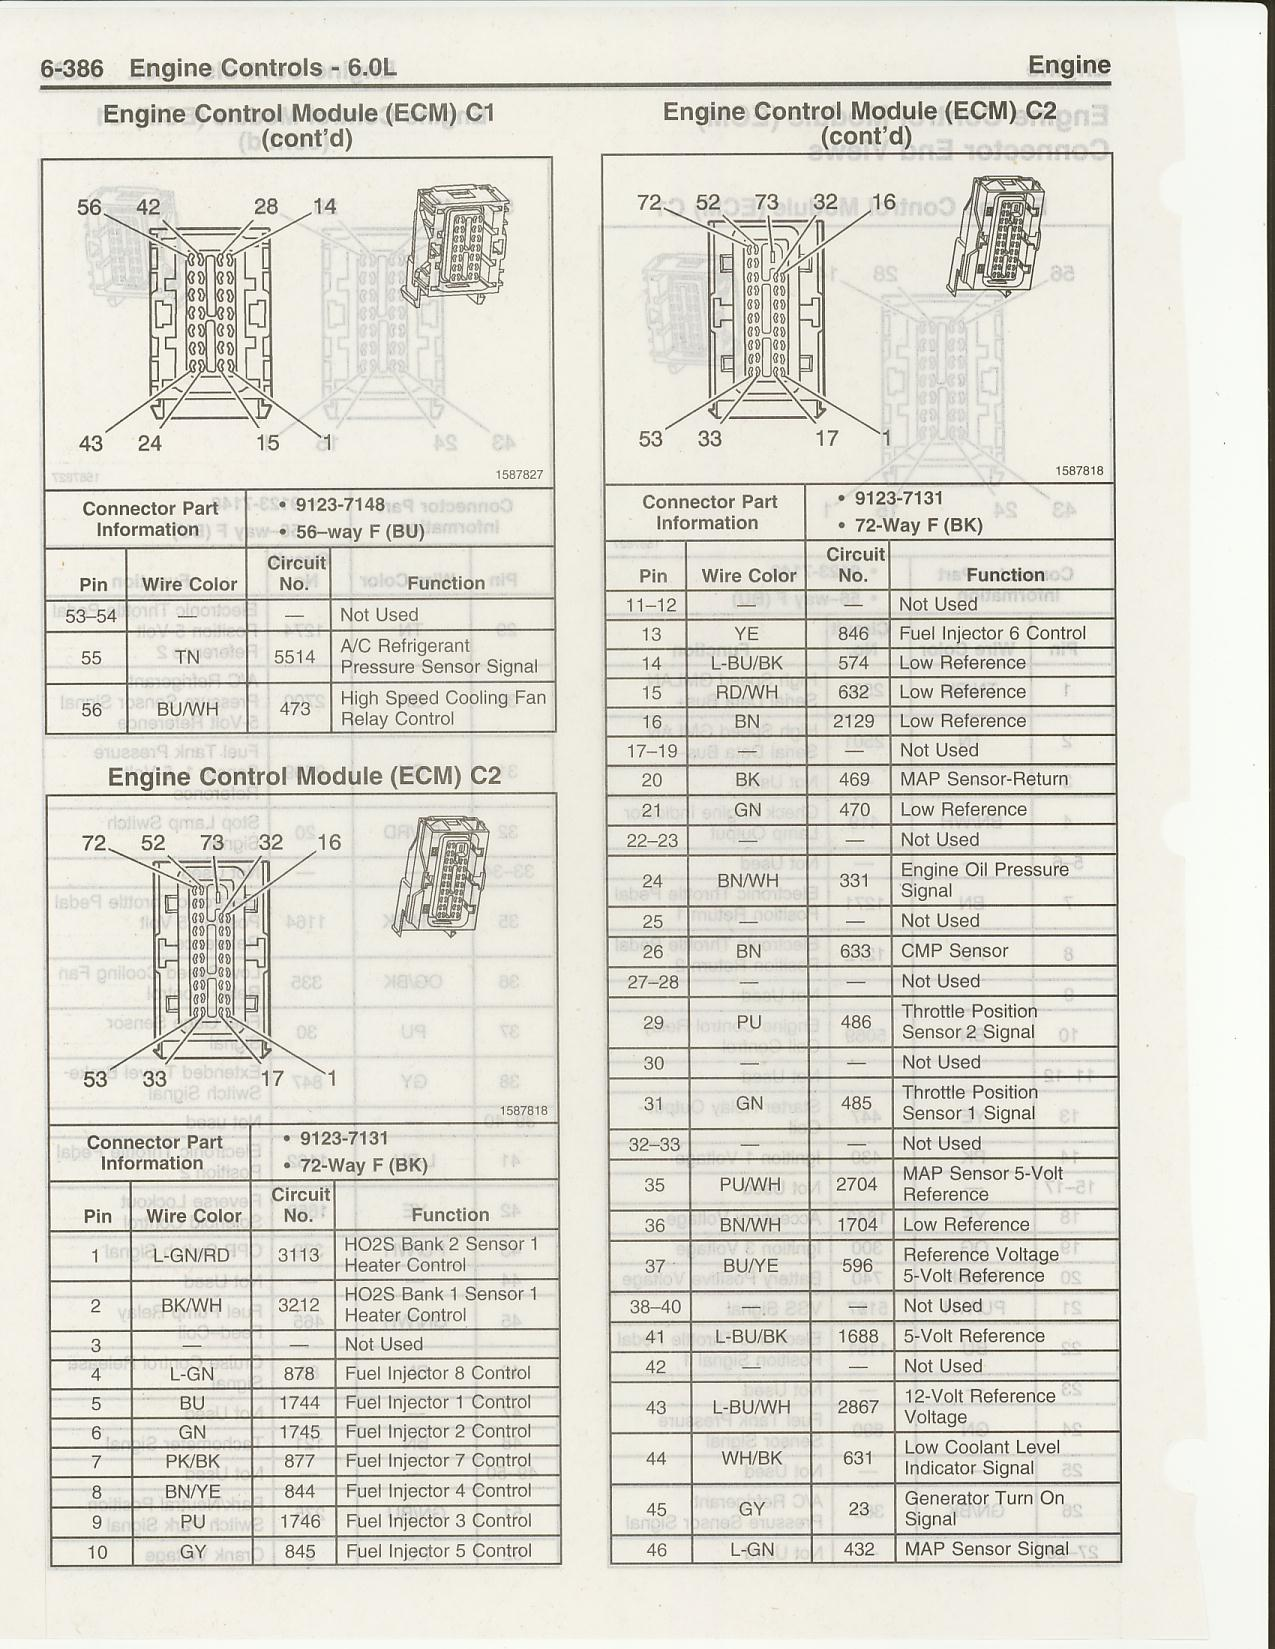 2015 Ls3 Engine Wiring Diagram Custom Gm Lt1 Alternator Pinouts And Diagrams Page 4 Ls1tech Camaro Firebird Rh Com 2001 Mustang Pdf